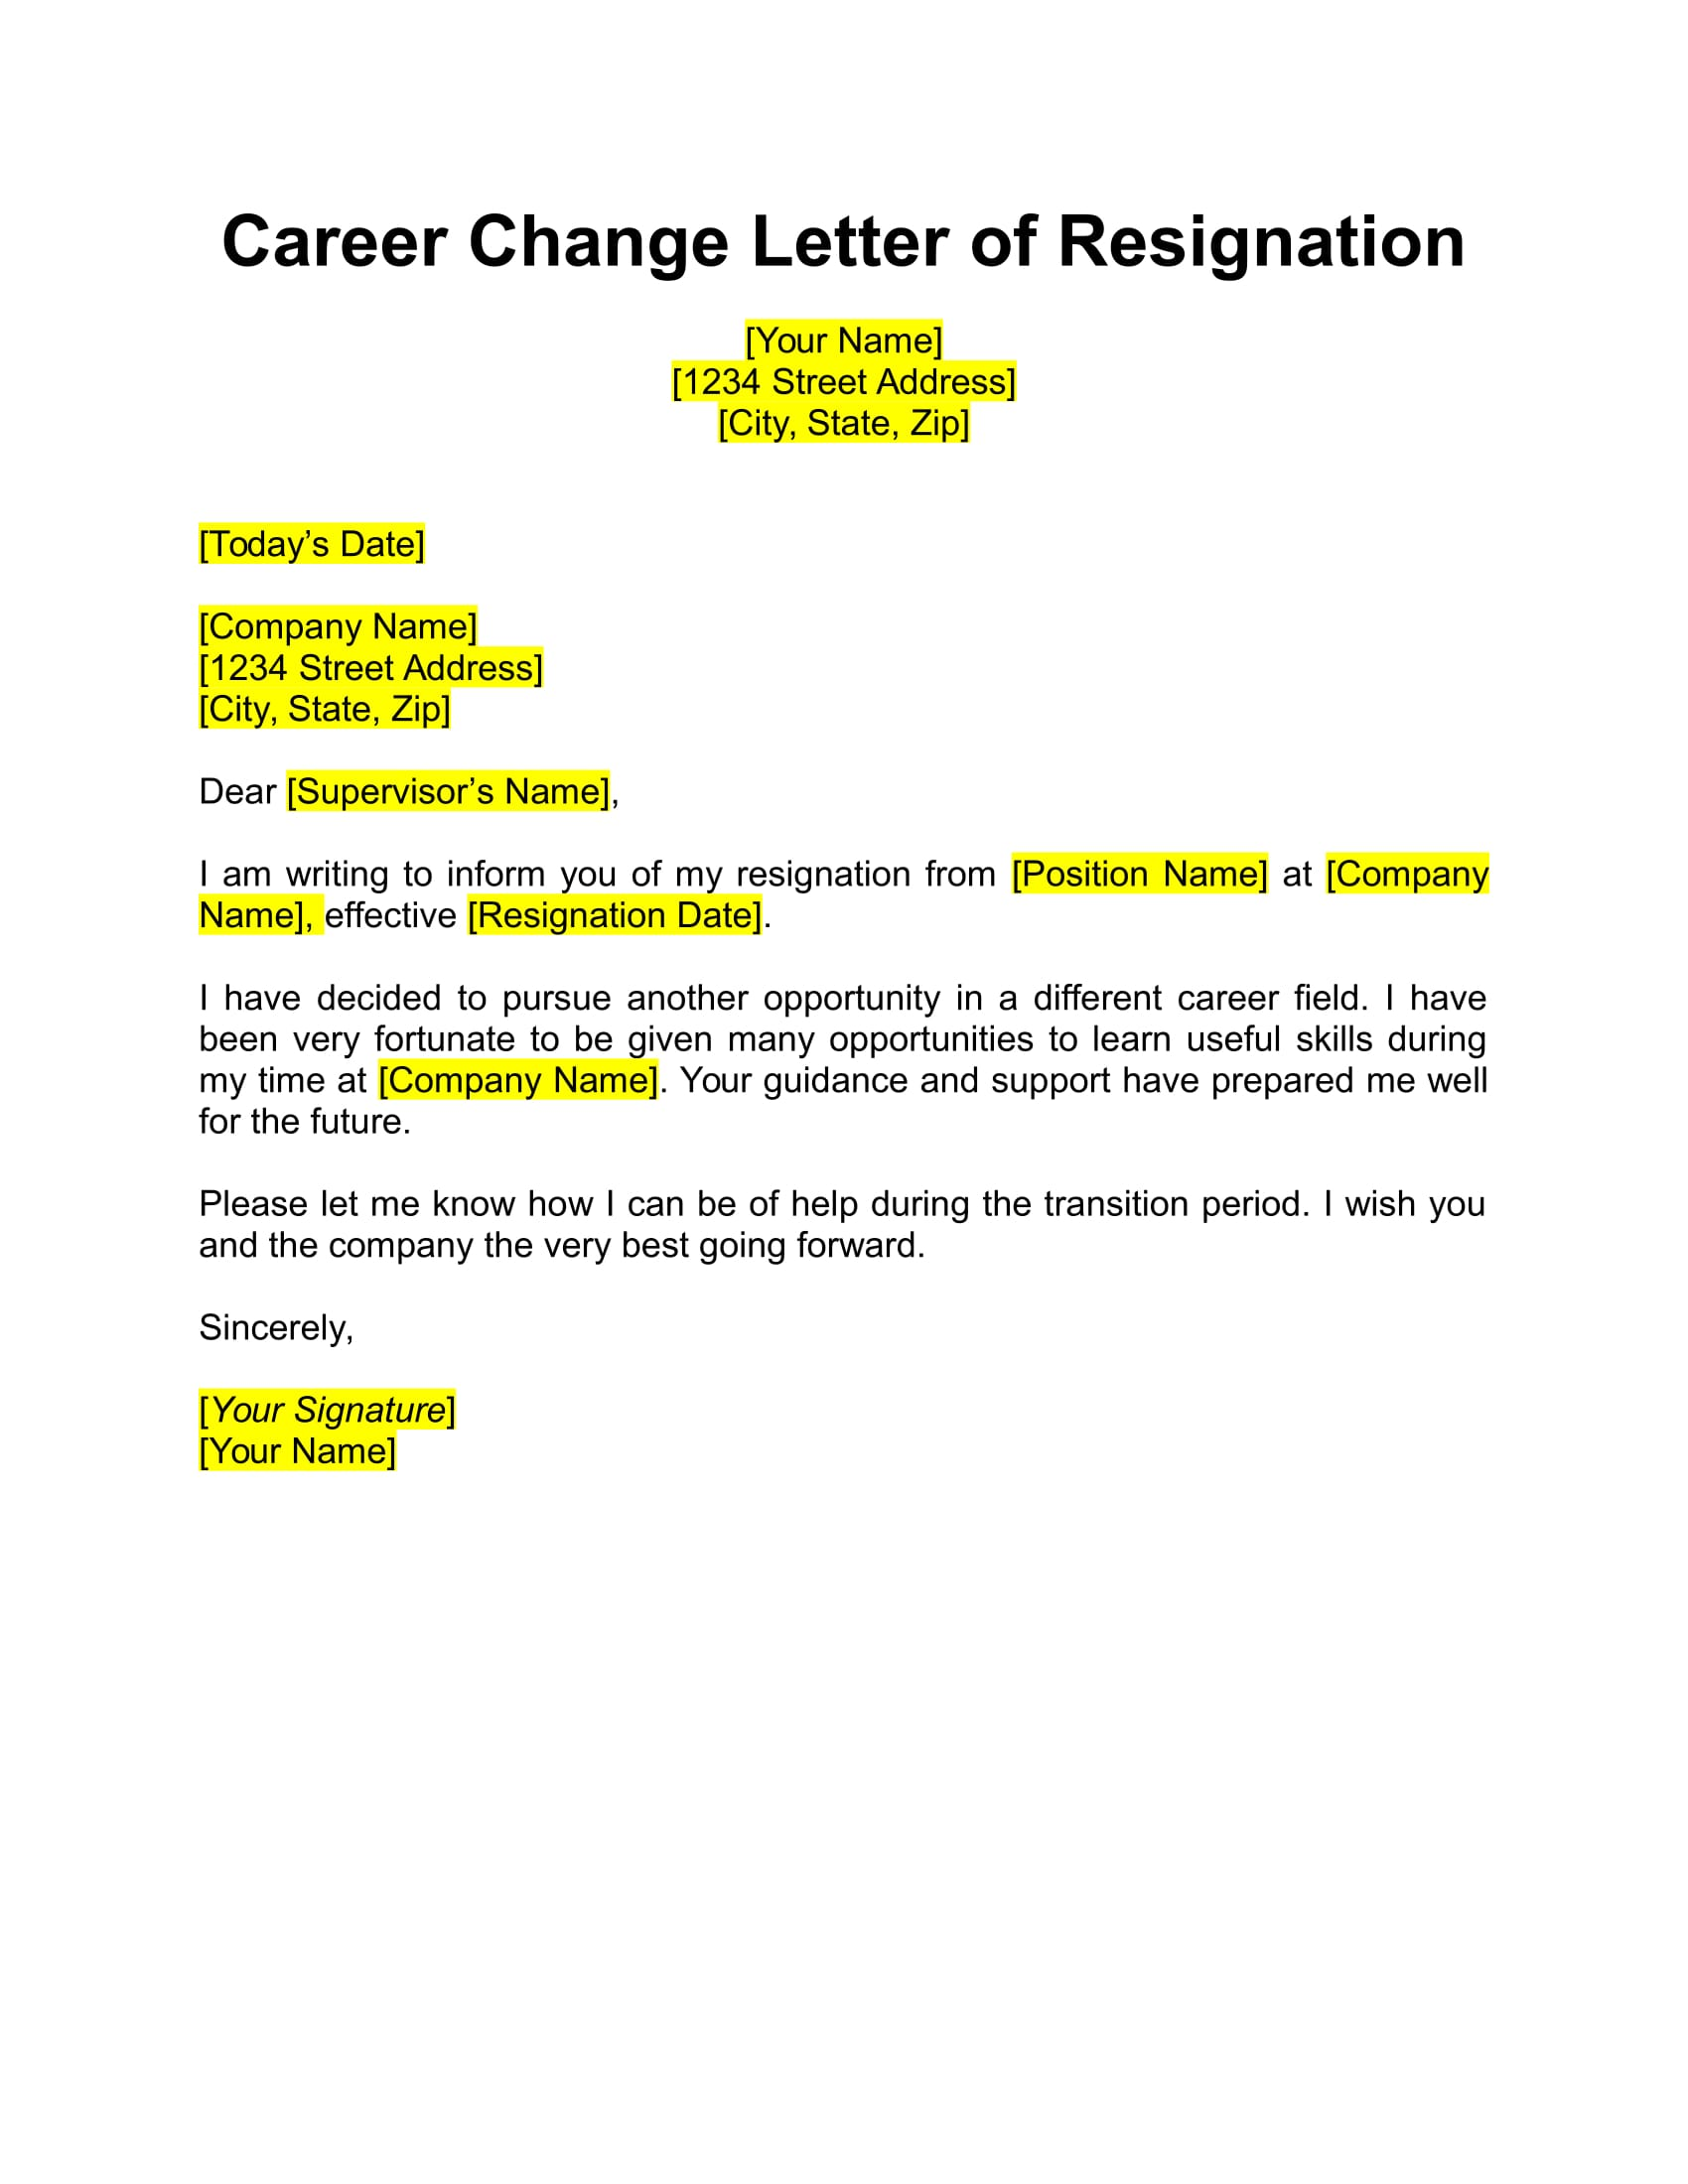 how to write resignation letter to company